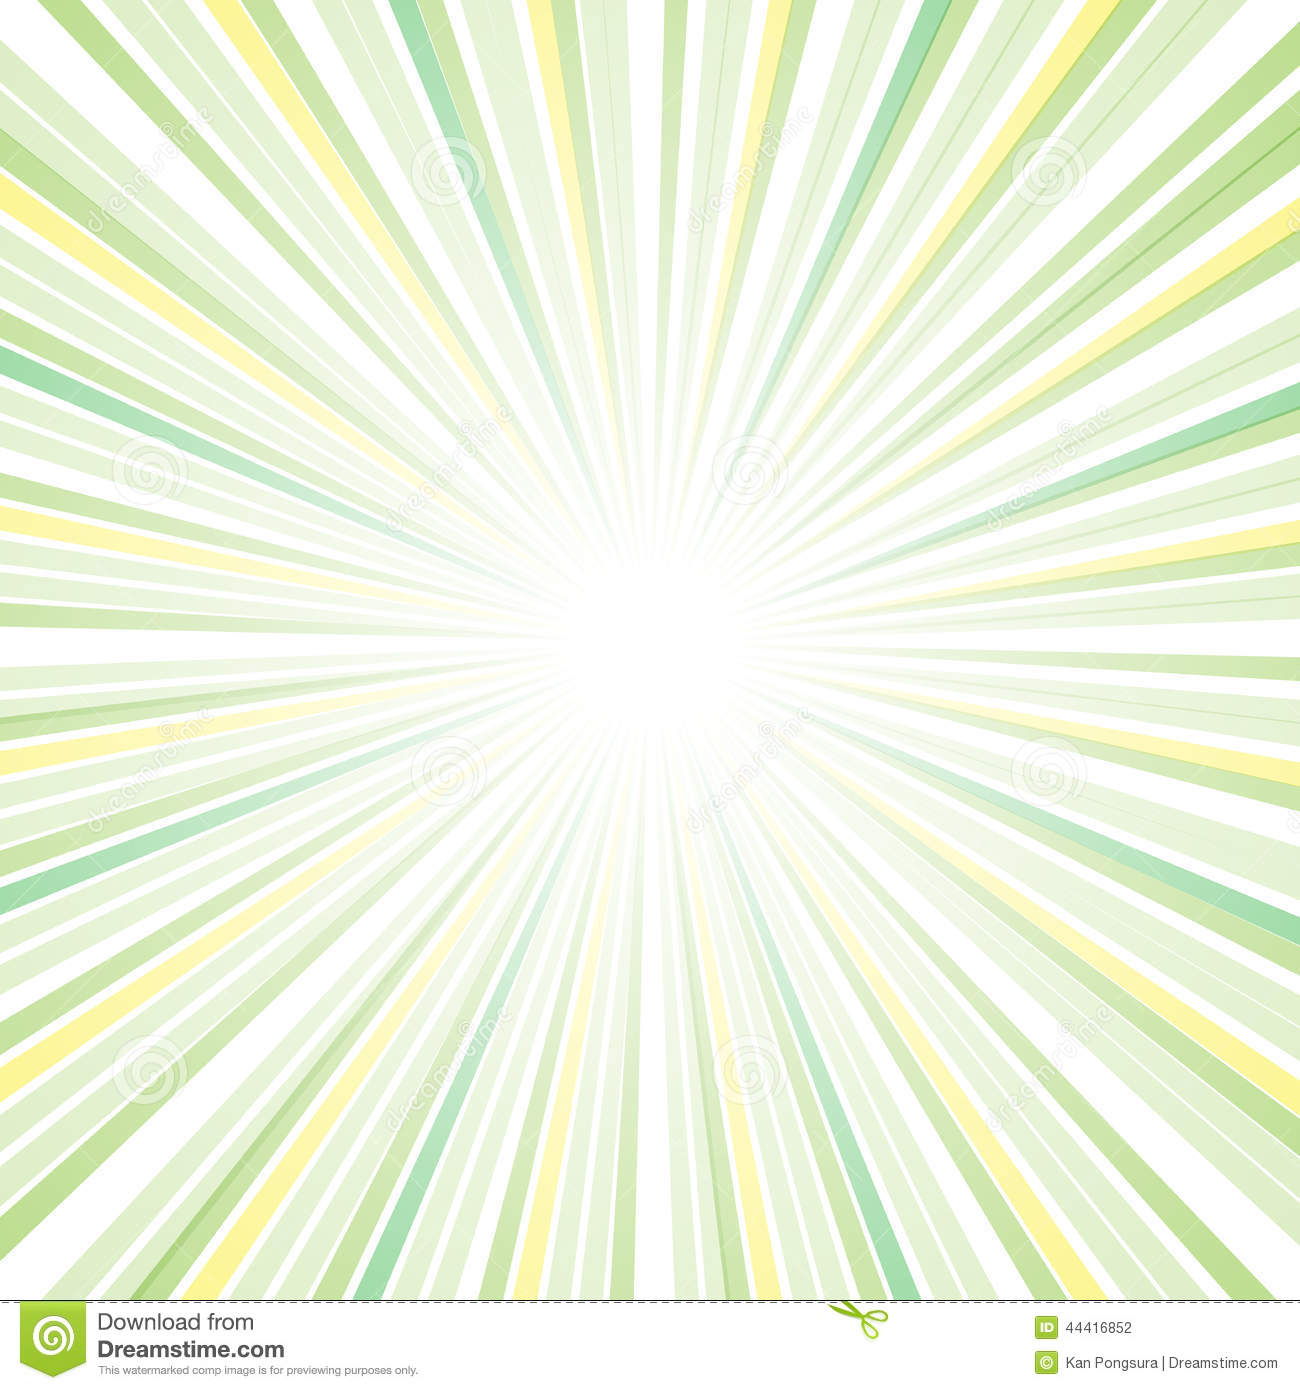 Sun Ray Abstract Design Stock Vector - Image: 44416852